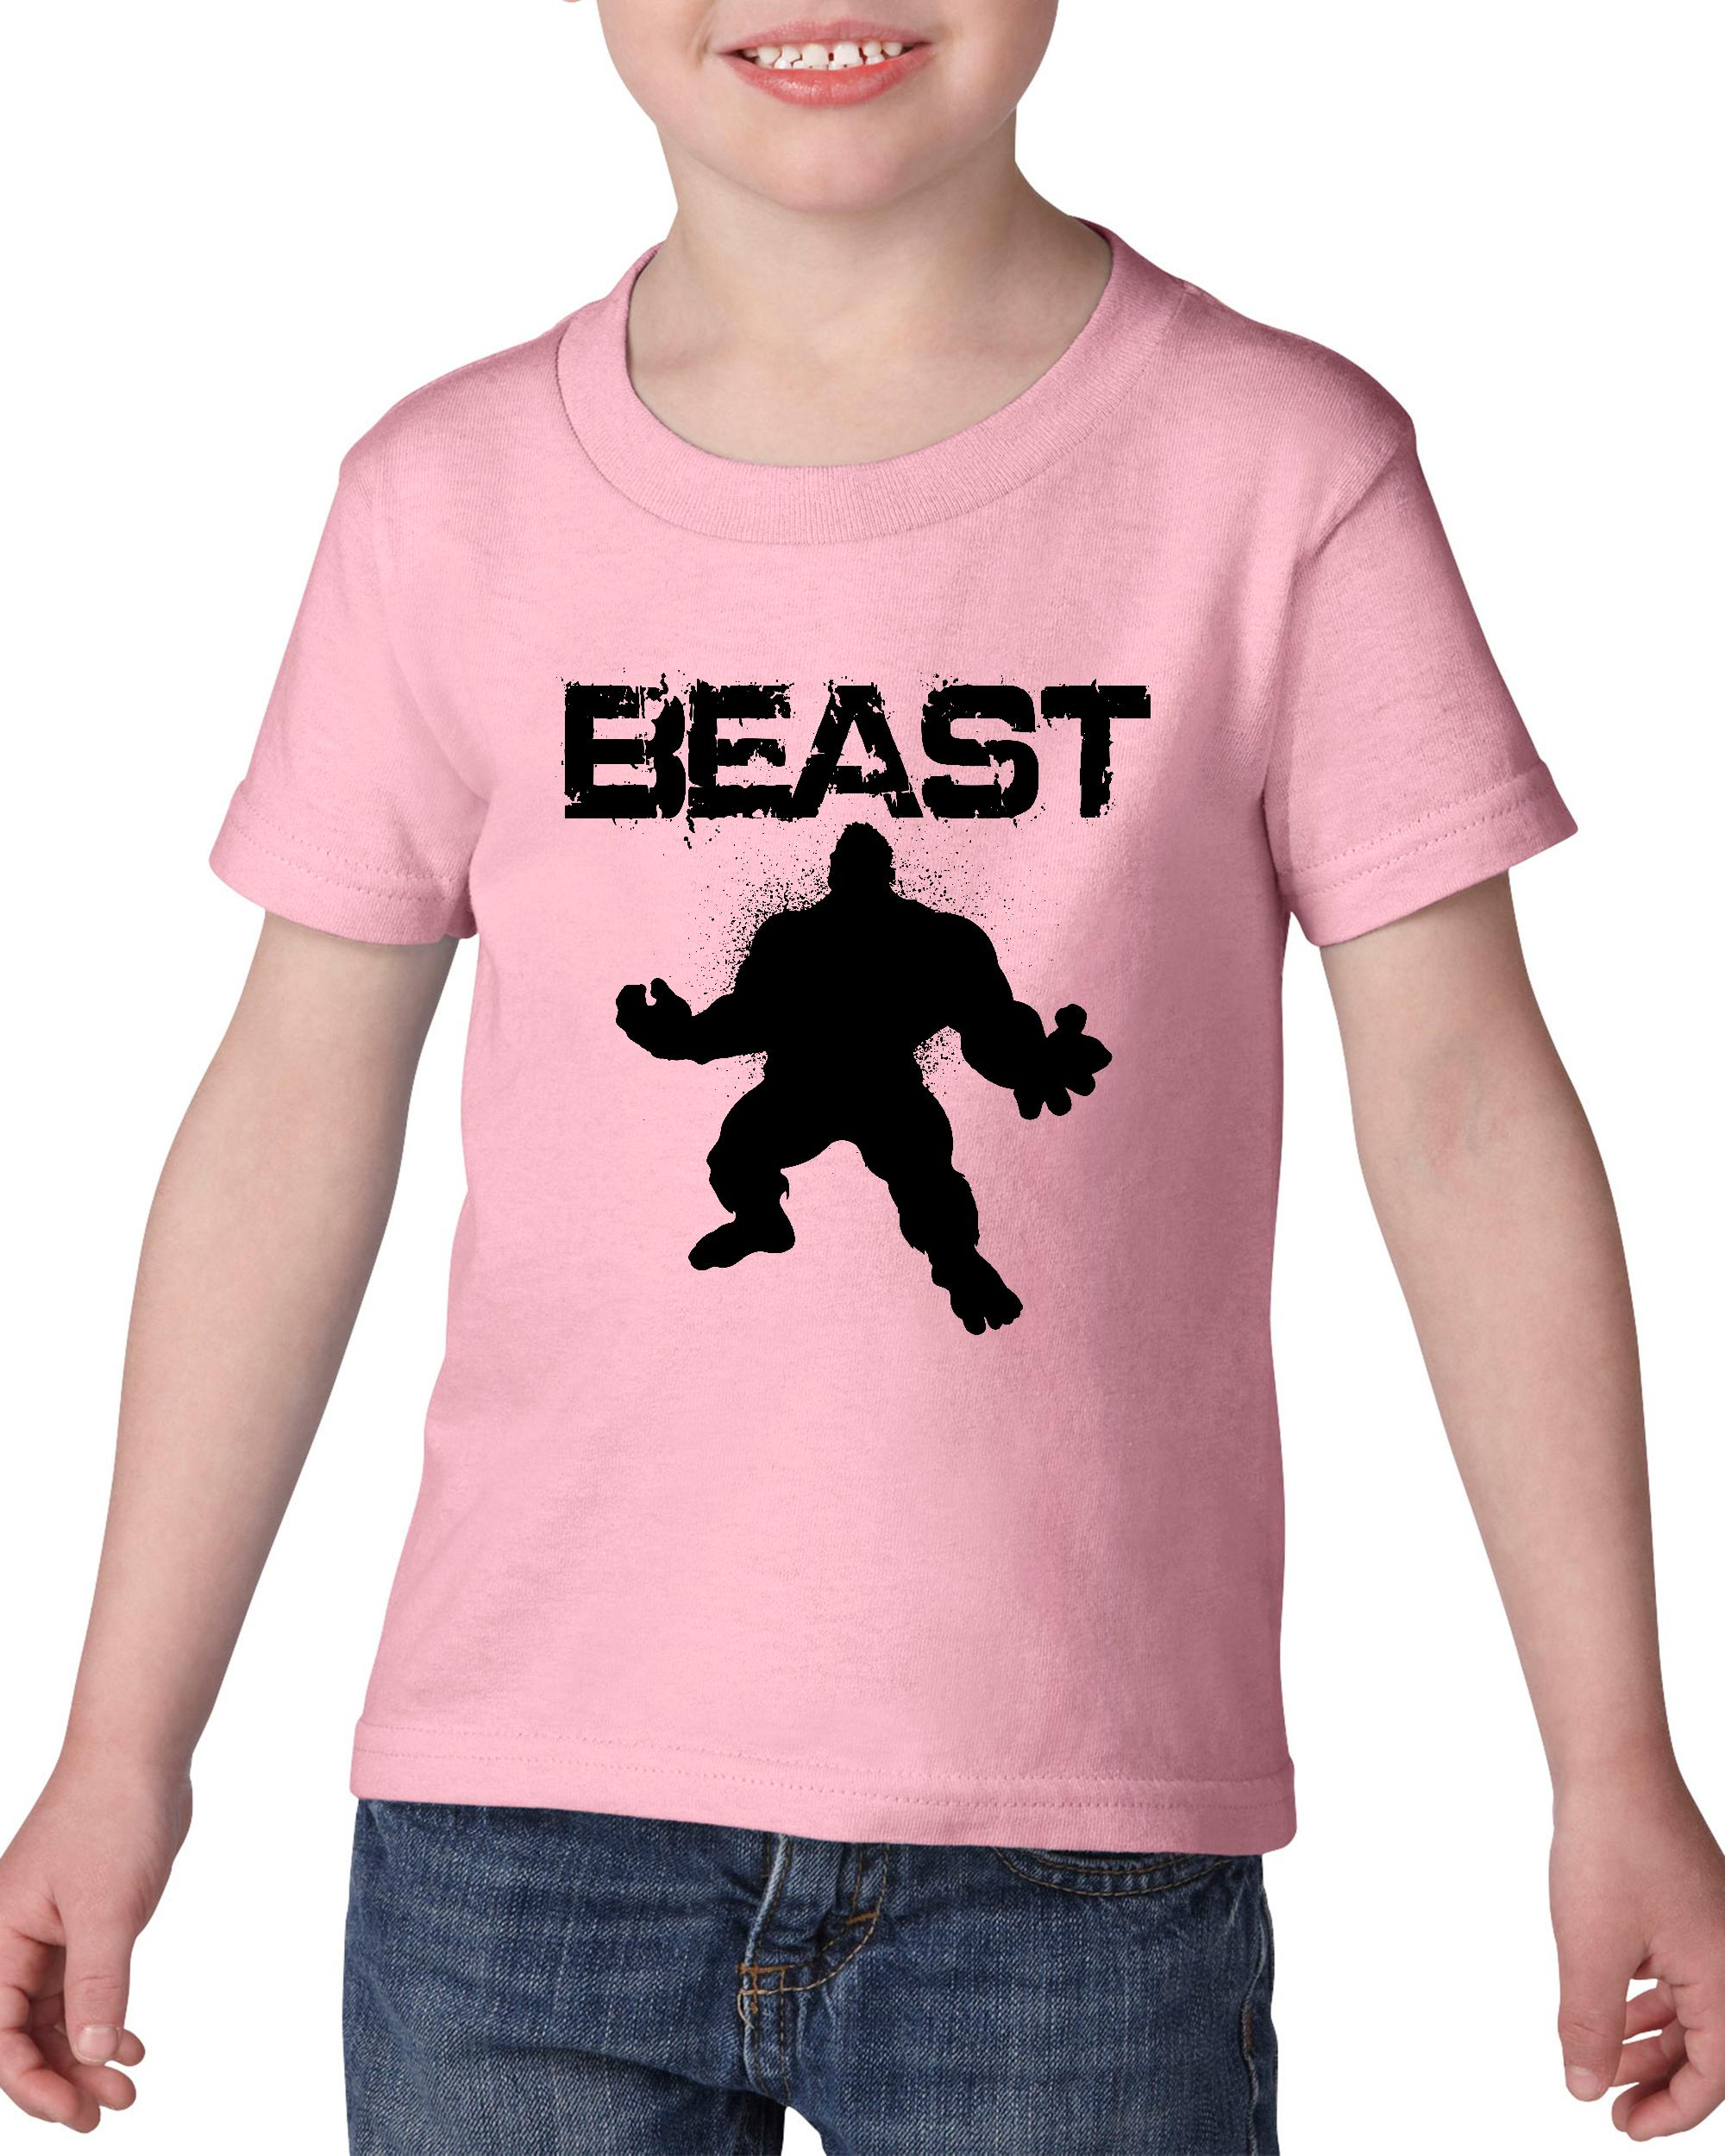 Artix Beast Guy Lift Match w Beauty Leggings Pants Shorts Gym Workout Fitness Heavy Cotton Toddler Kids T-Shirt Tee Clothing